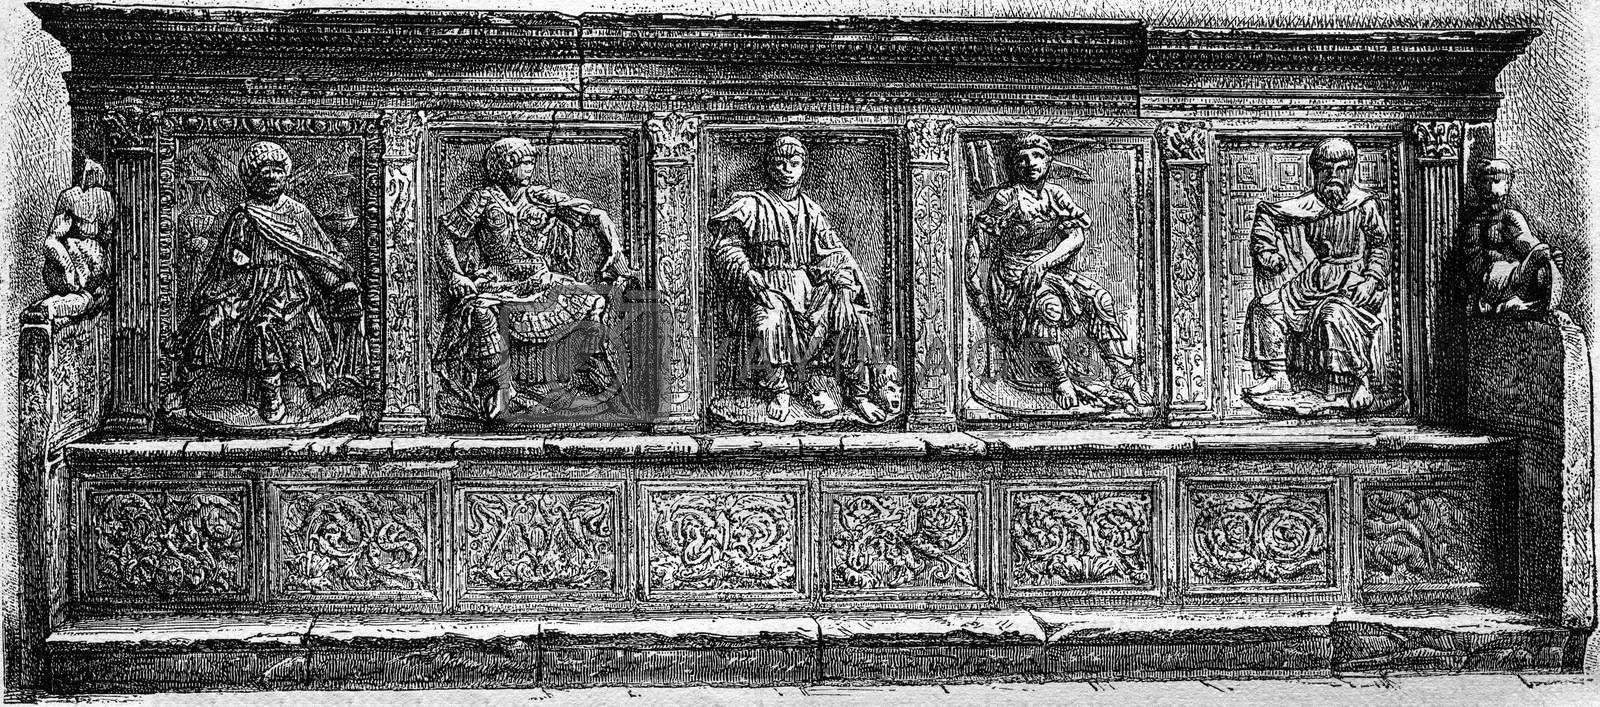 One of the benches of the Lodge of Merchants in Siena, vintage engraved illustration. Magasin Pittoresque 1877.